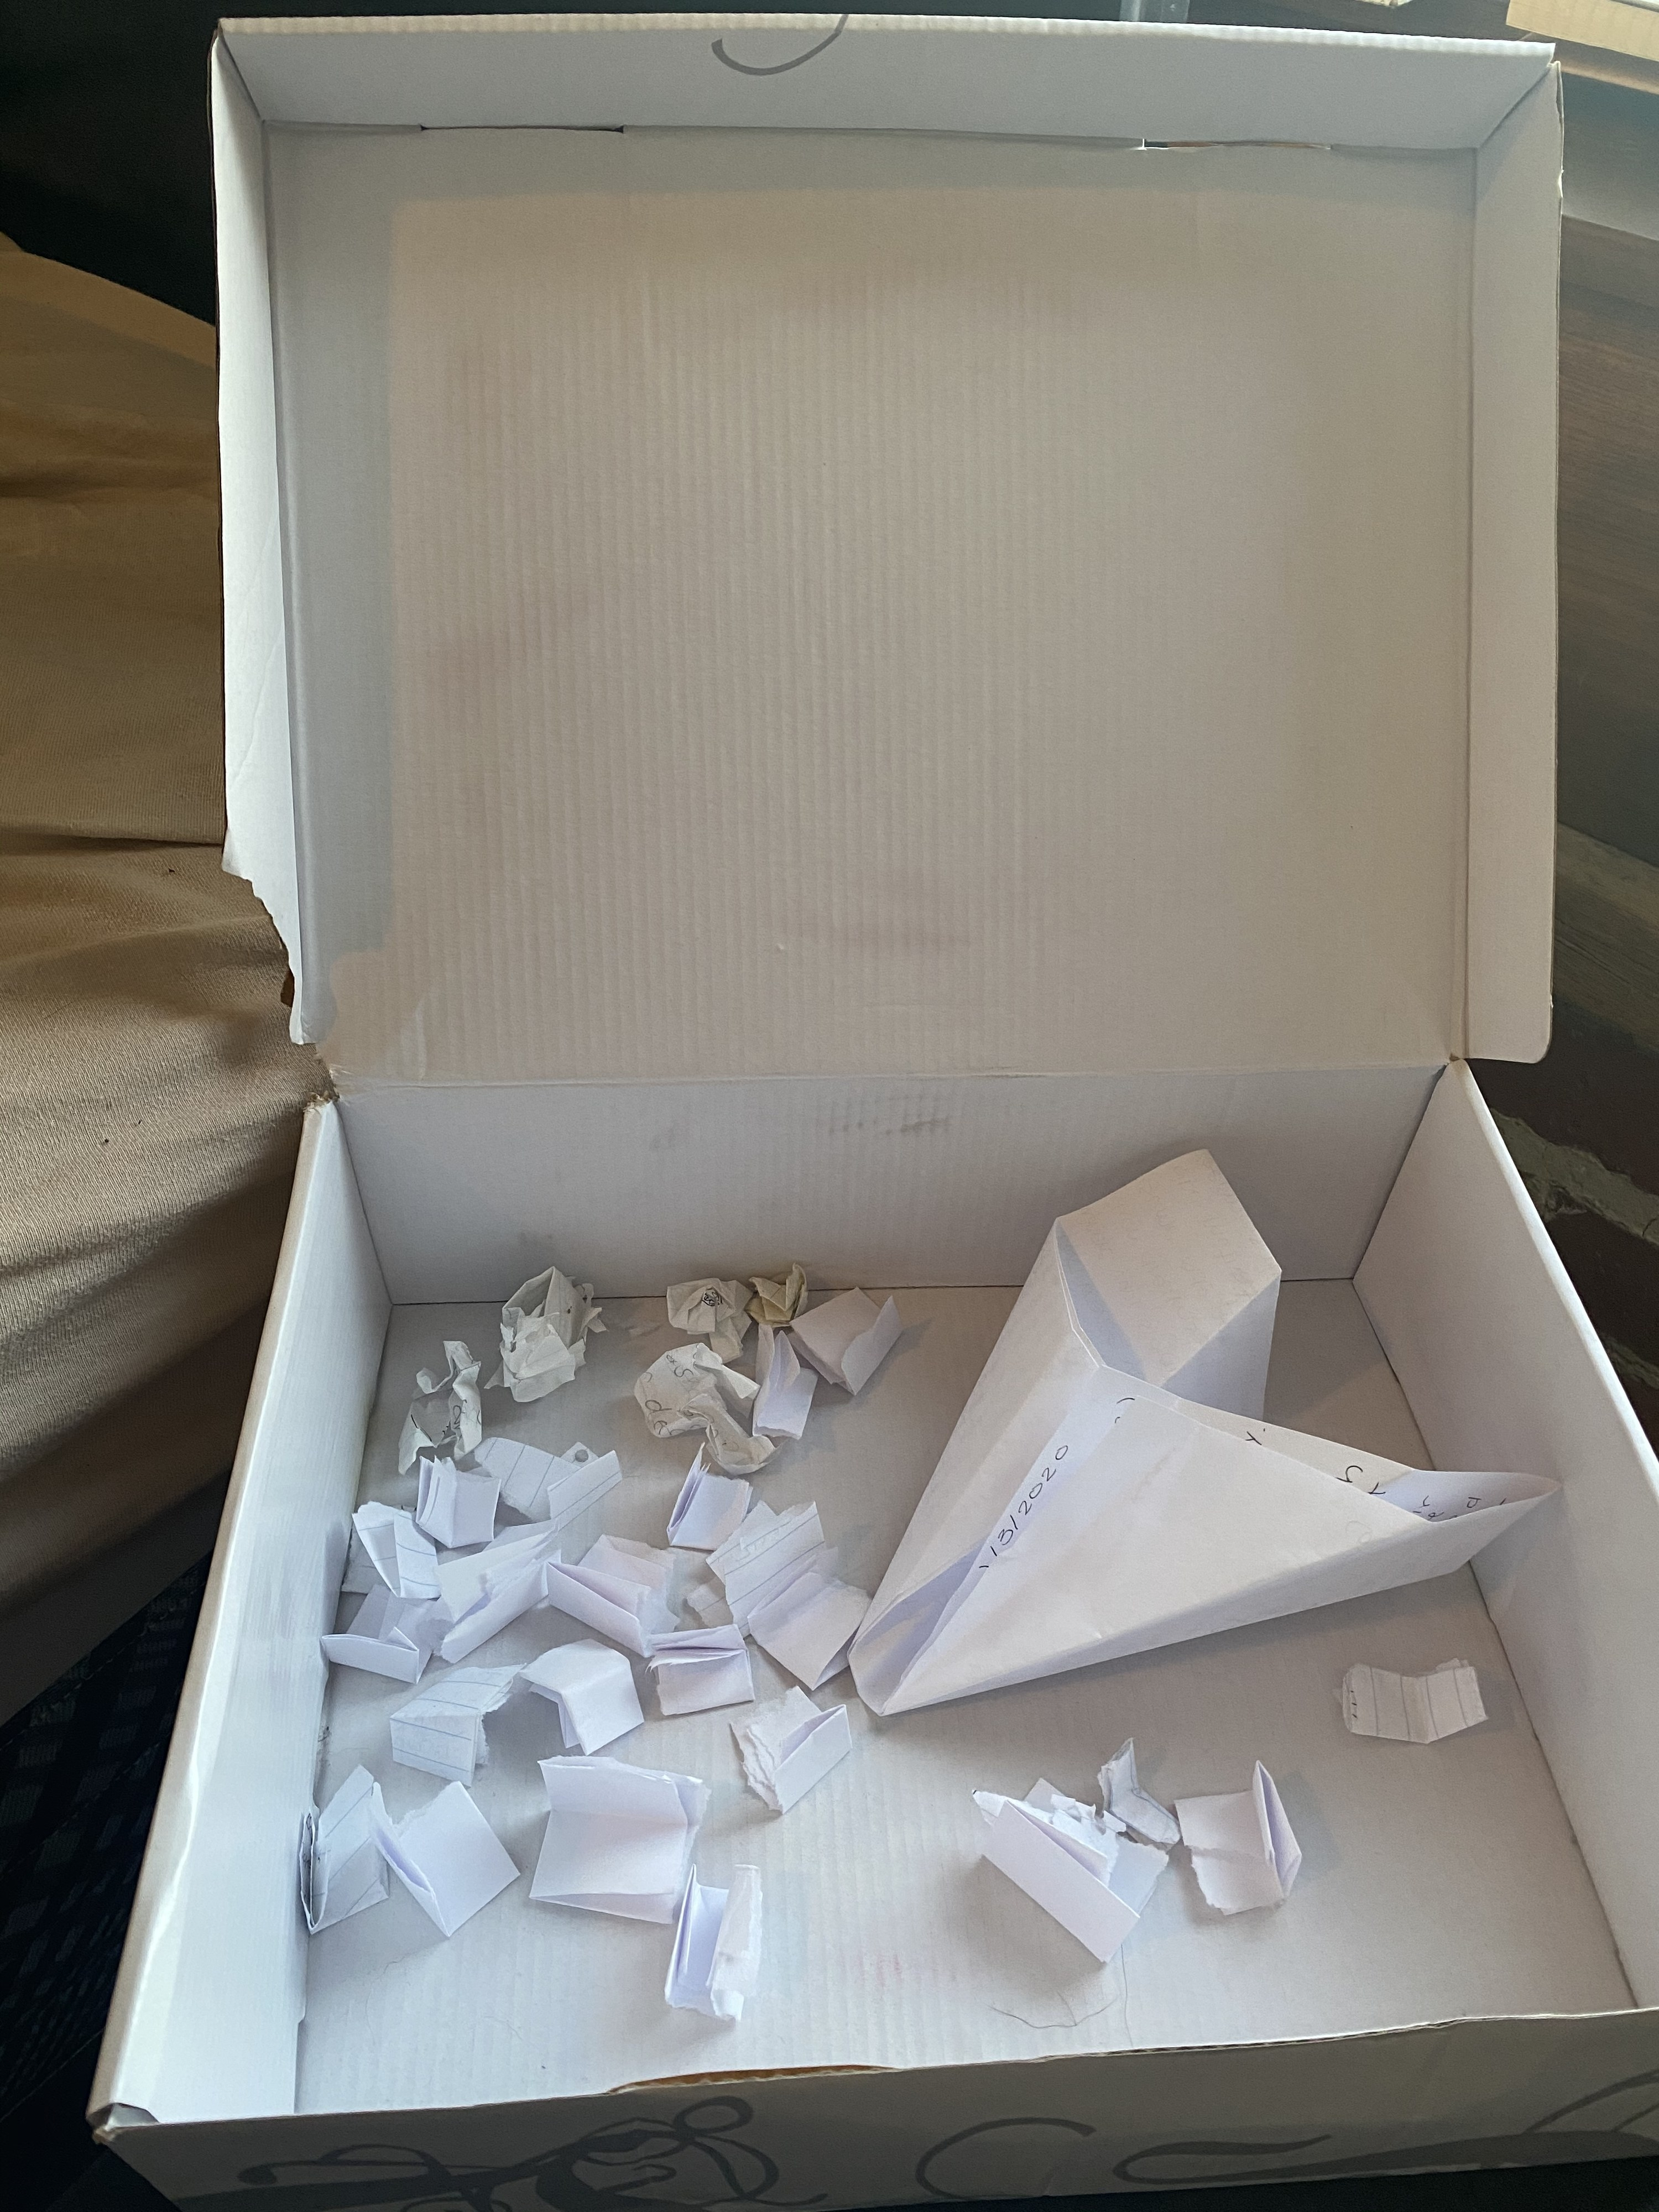 A white shoebox is filled with multiple pieces of folded up paper.